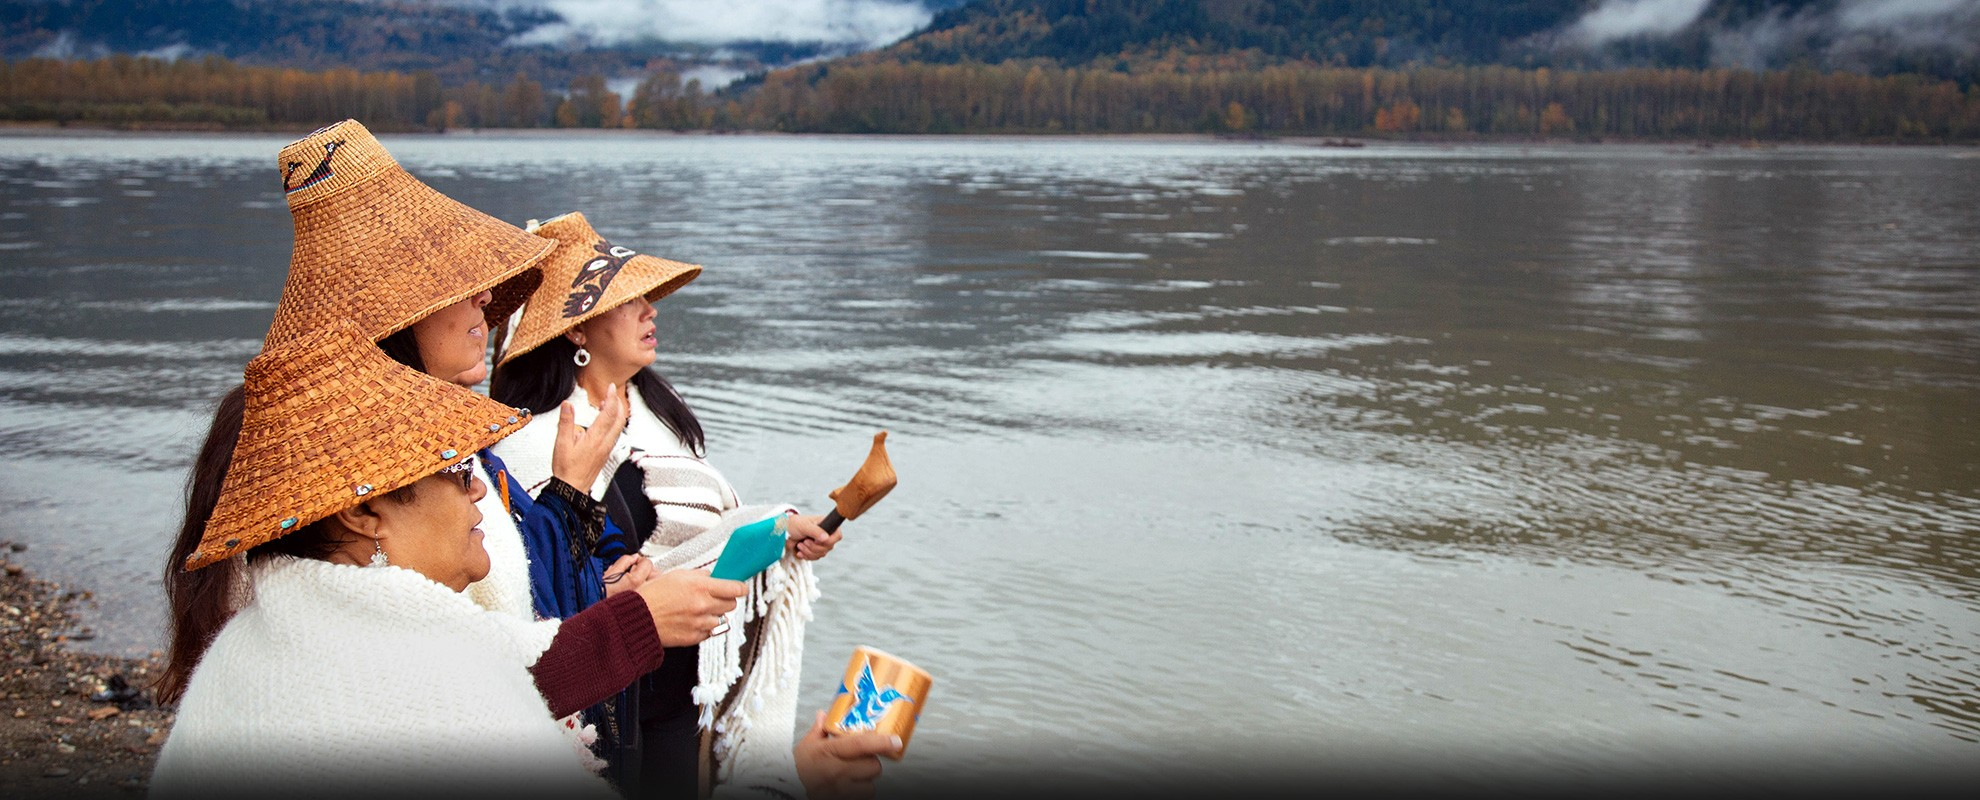 Members of the Tulalip Tribe sing along the banks of the Fraser River in Chilliwack, British Columbia.